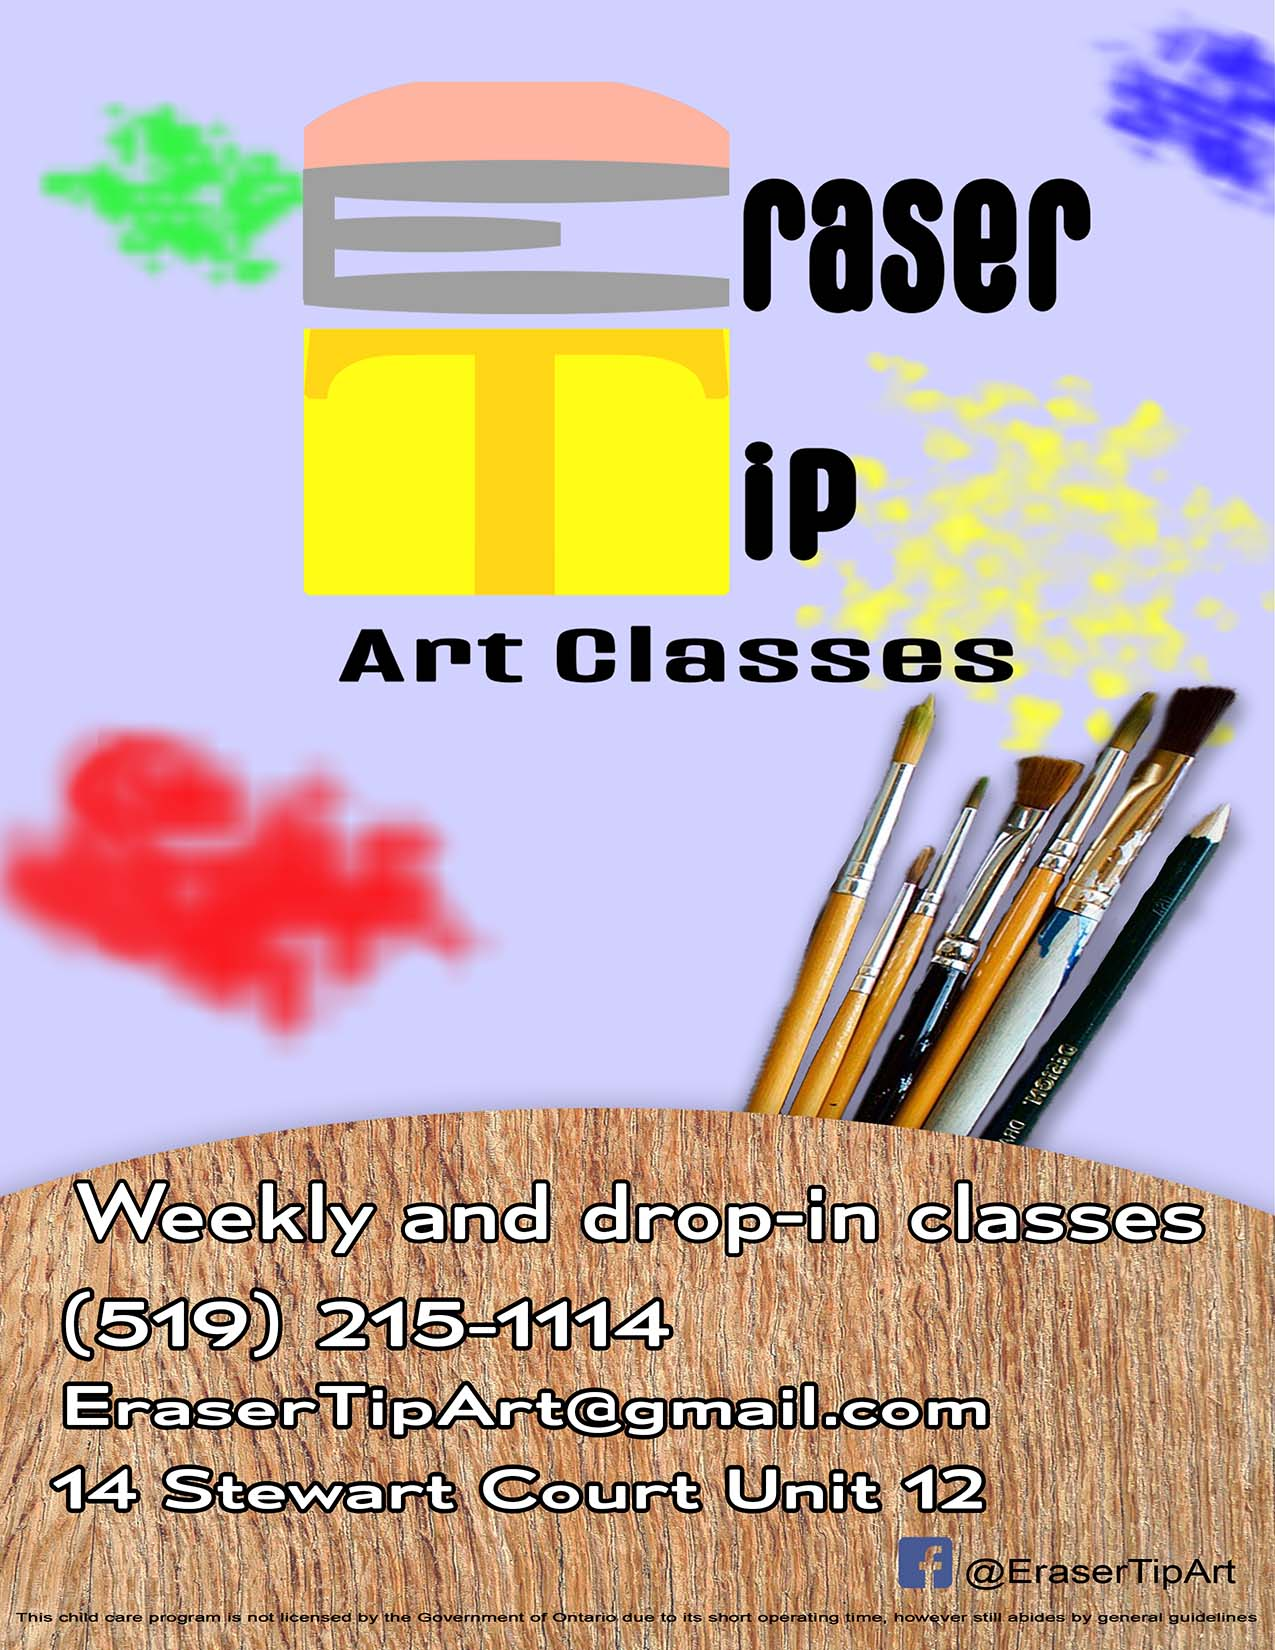 Eraser Tip Art Classes Poster - Paint splotches and paint brushes with information about available classes